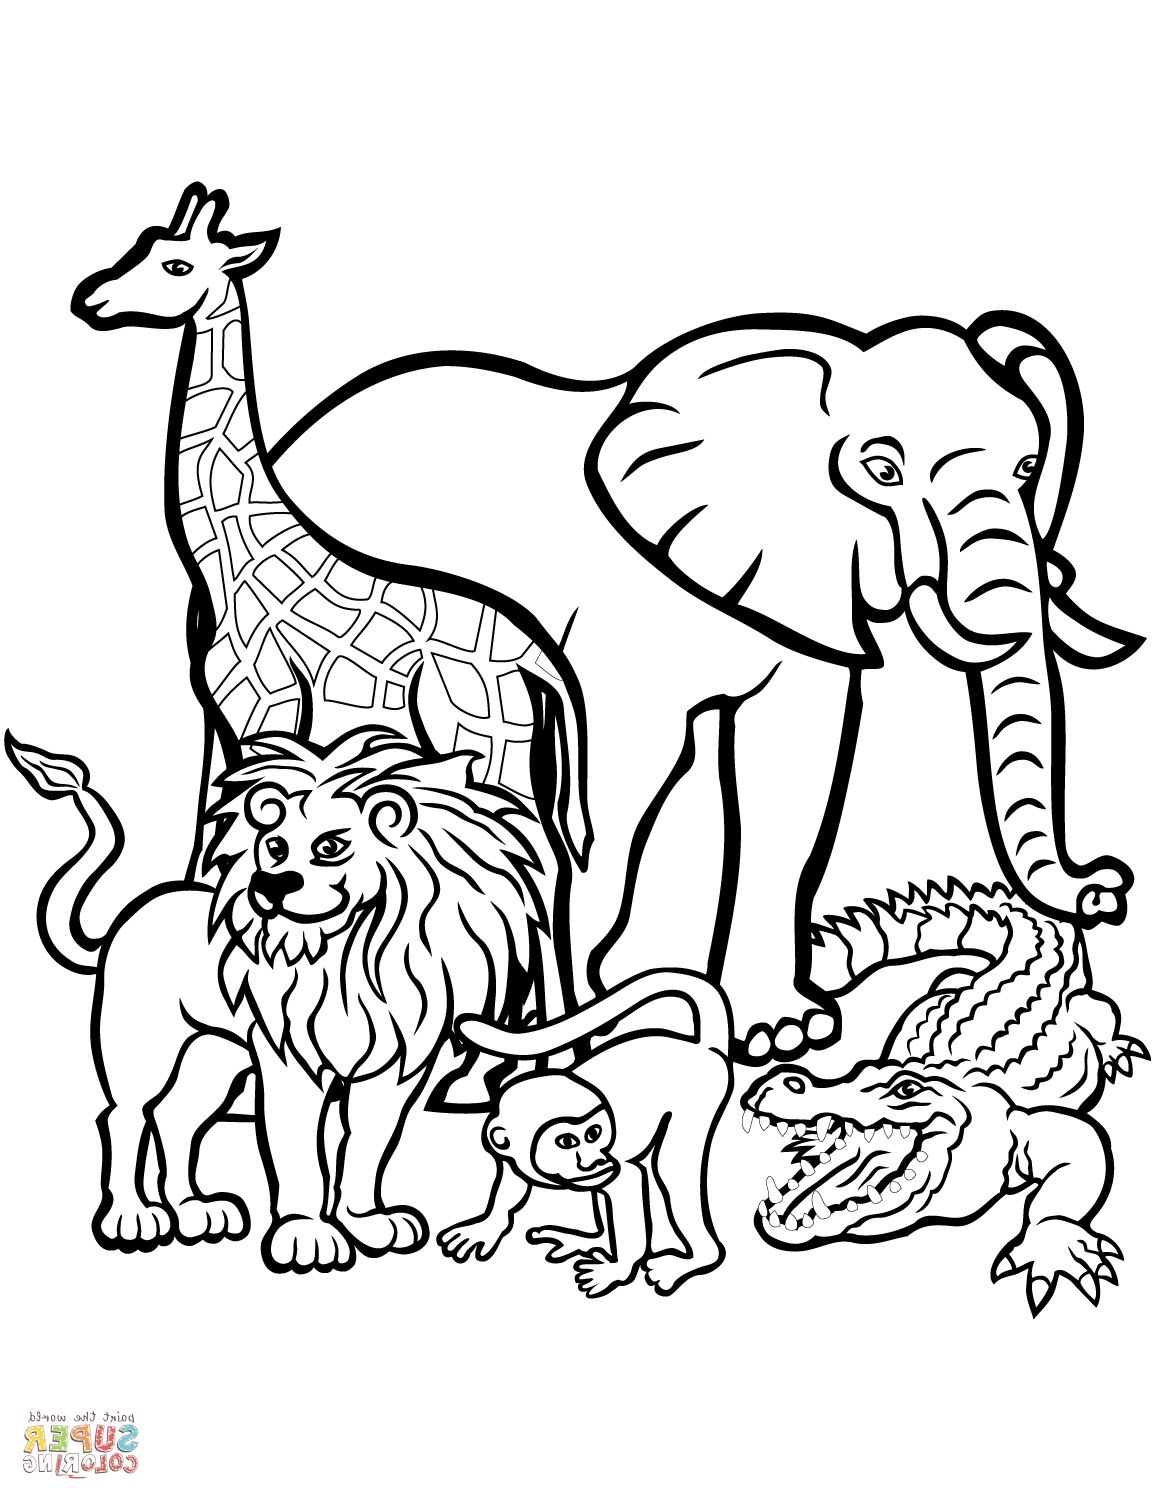 Animals Coloring Pages Zoo Animal Coloring Pages Animal Coloring Pages Animal Coloring Books